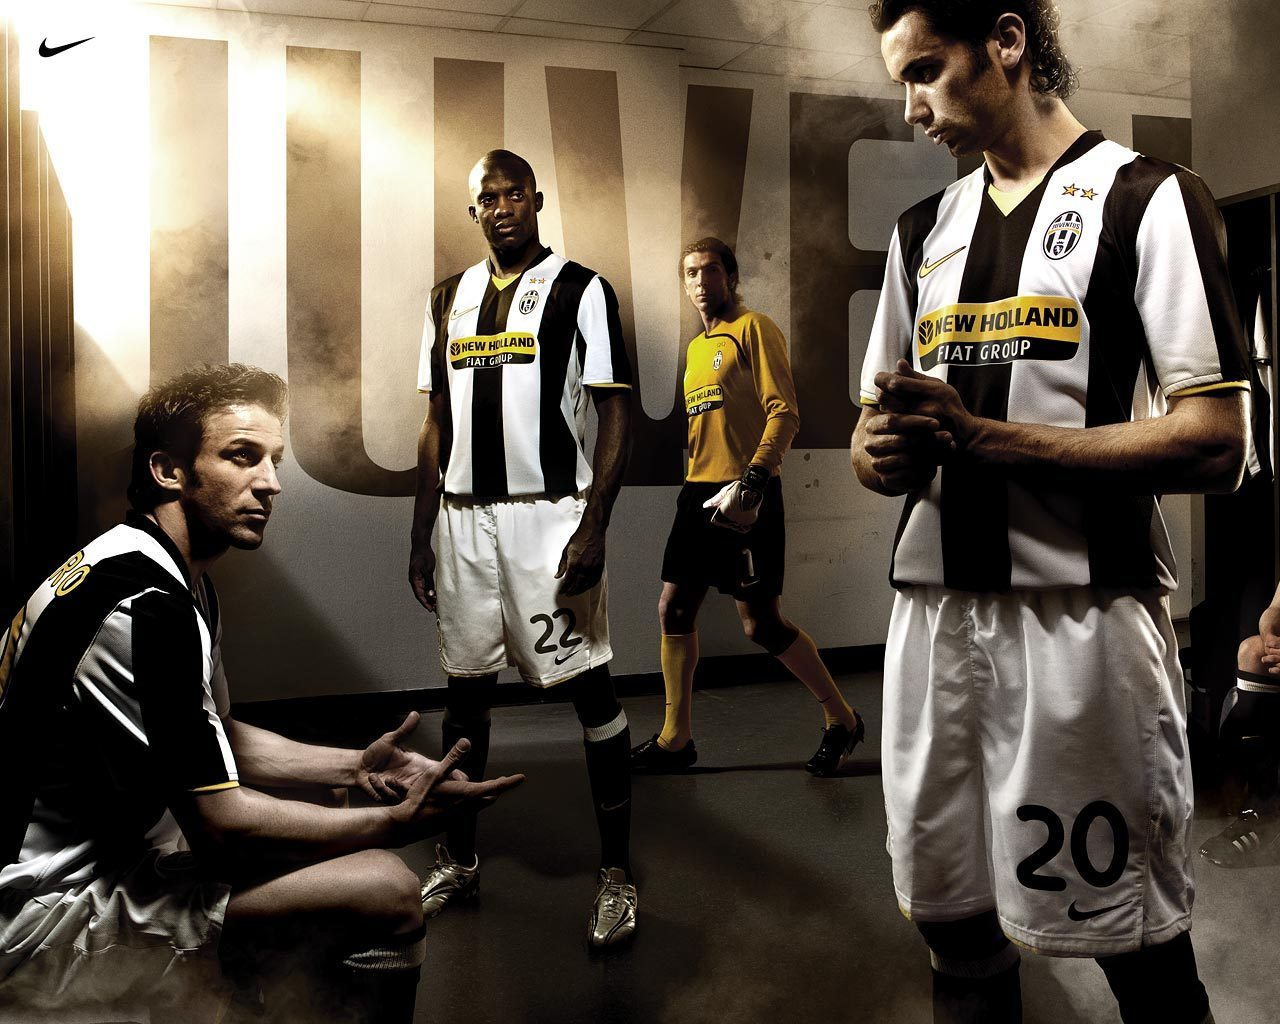 Juventus Images Juvestoria Hd Wallpaper And Background Photos 22810998